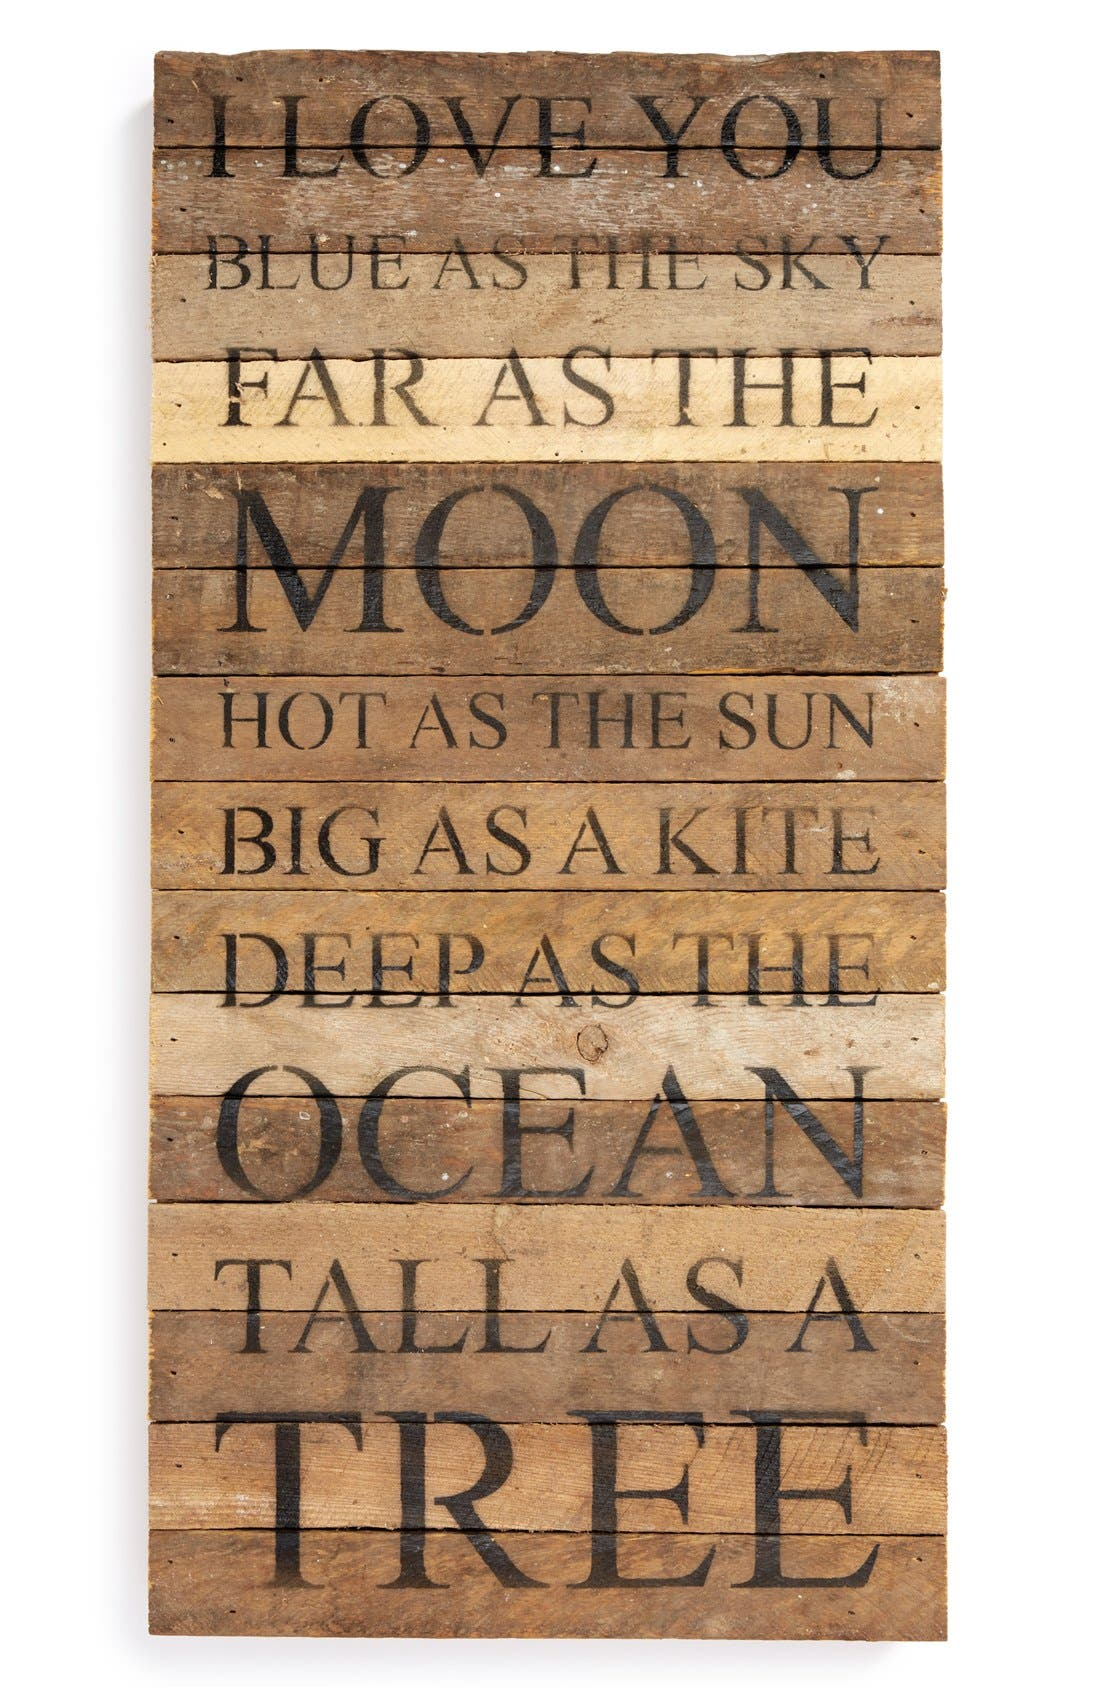 Alternate Image 1 Selected - Second Nature By Hand 'I Love You Blue as the Sky Far as the Moon' Repurposed Wood Wall Art